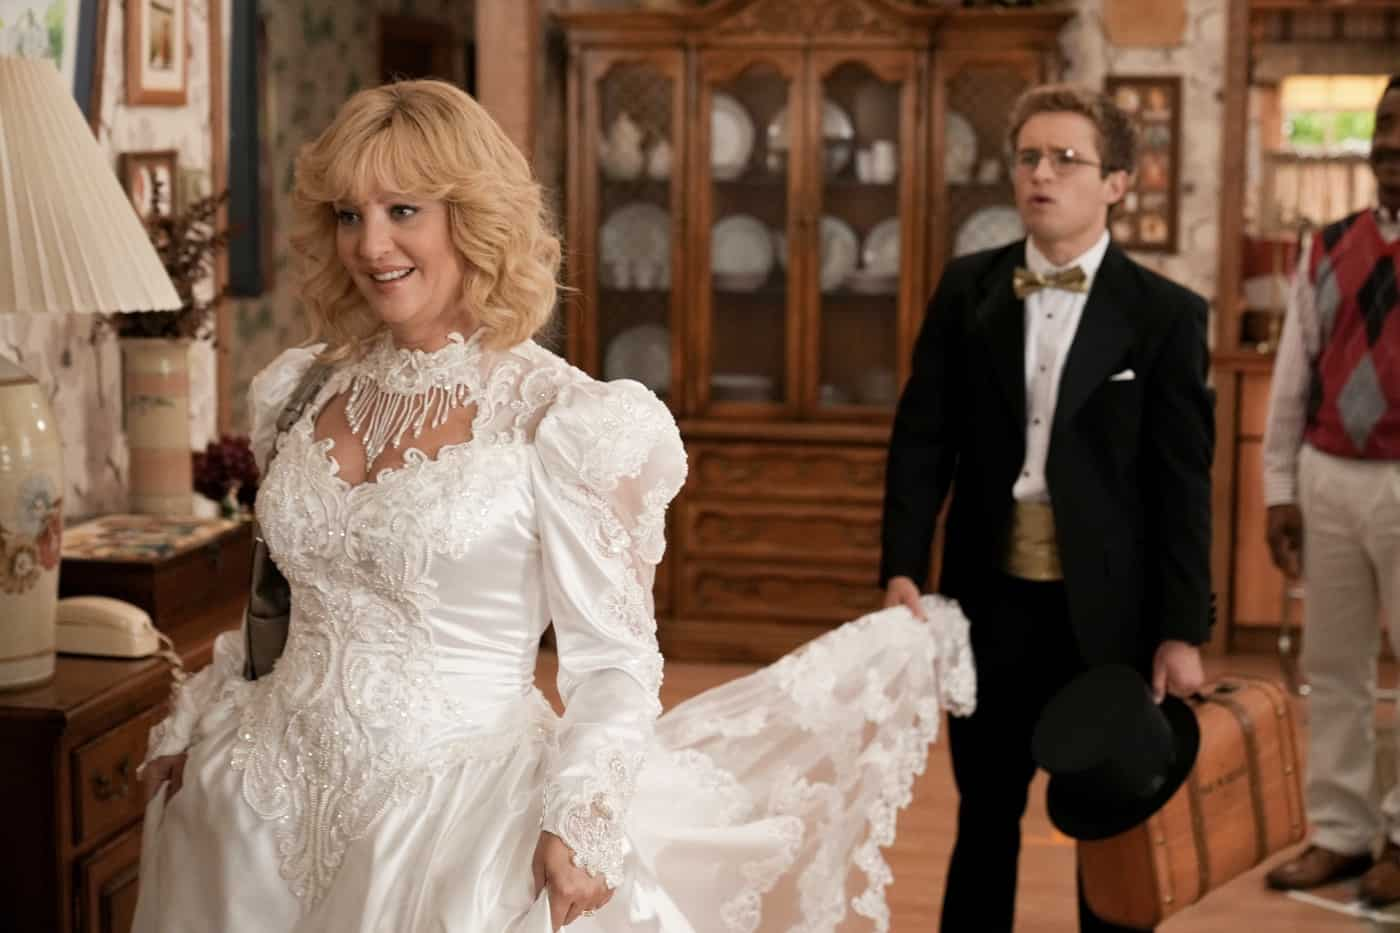 """THE GOLDBERGS Season 9 Episode 3 -""""Riptide Waters"""" – Recently injured at local waterpark Riptide Waters, Mr. Glascott embarks on a mission to petition the neighborhood to close it down. Determined to foil Mr. Glascott's plan, Barry starts his own petition to keep the beloved institution, filled with childhood memories, open. Meanwhile, Erica is faced with frustration as Beverly takes over her wedding planning. Geoff tries to intervene by incorporating advice from a """"professional"""" marriage counselor only to realize he should have listened to Murray and let the ladies sort it out themselves on new episode of """"The Goldbergs,"""" airing WEDNESDAY, OCT. 6 (8:00-8:30 p.m. EDT), on ABC. (ABC/Scott Everett White) WENDI MCLENDON-COVEY"""